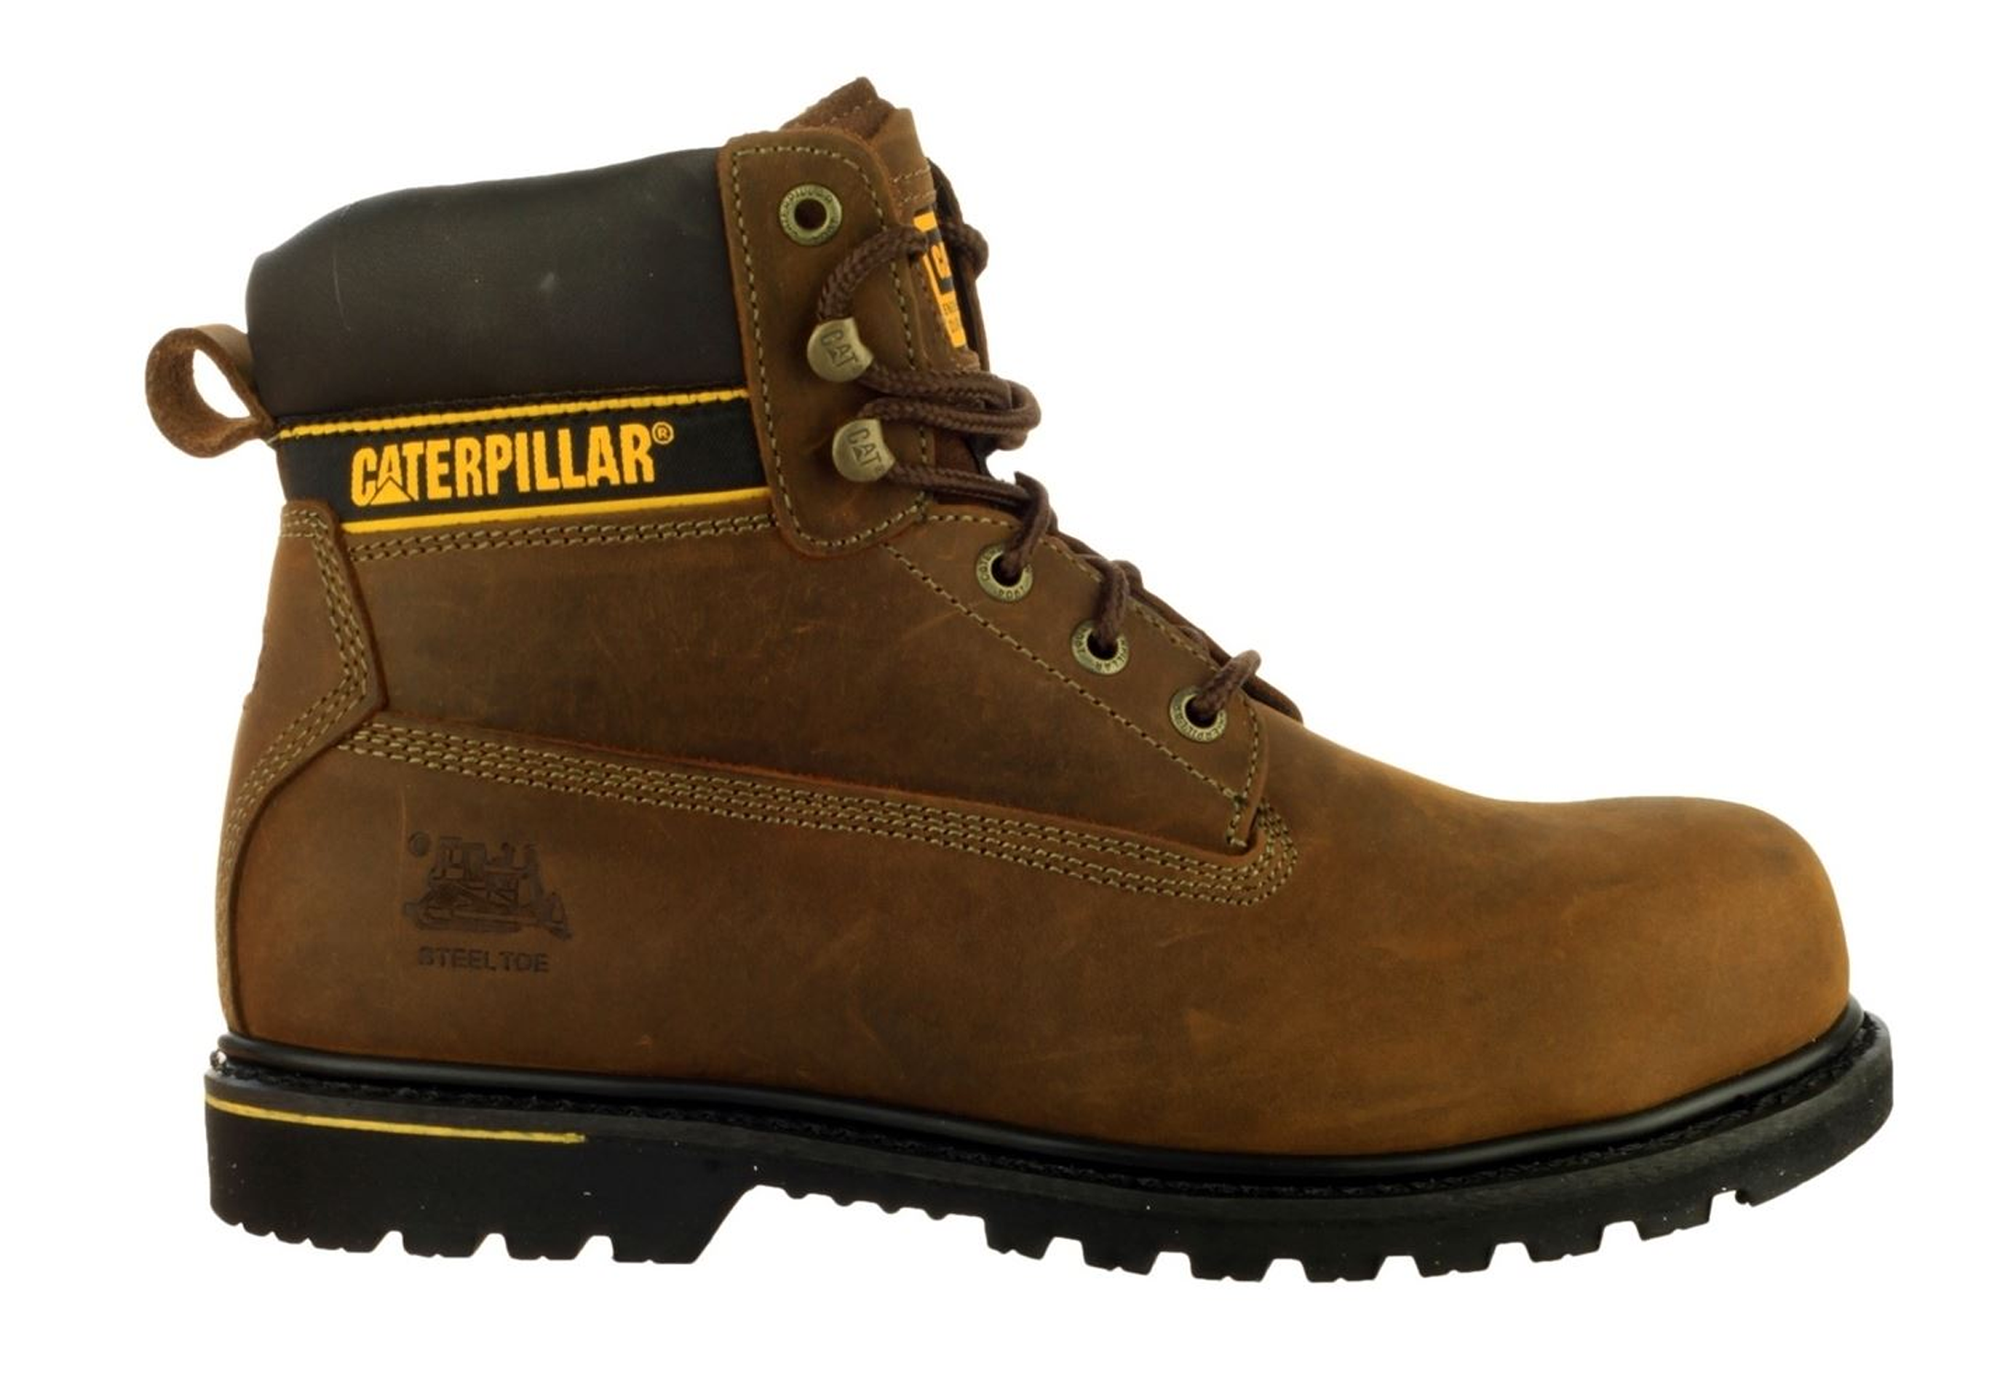 New Caterpillar Cat Holton Non Steel Toe Mens Work Boots